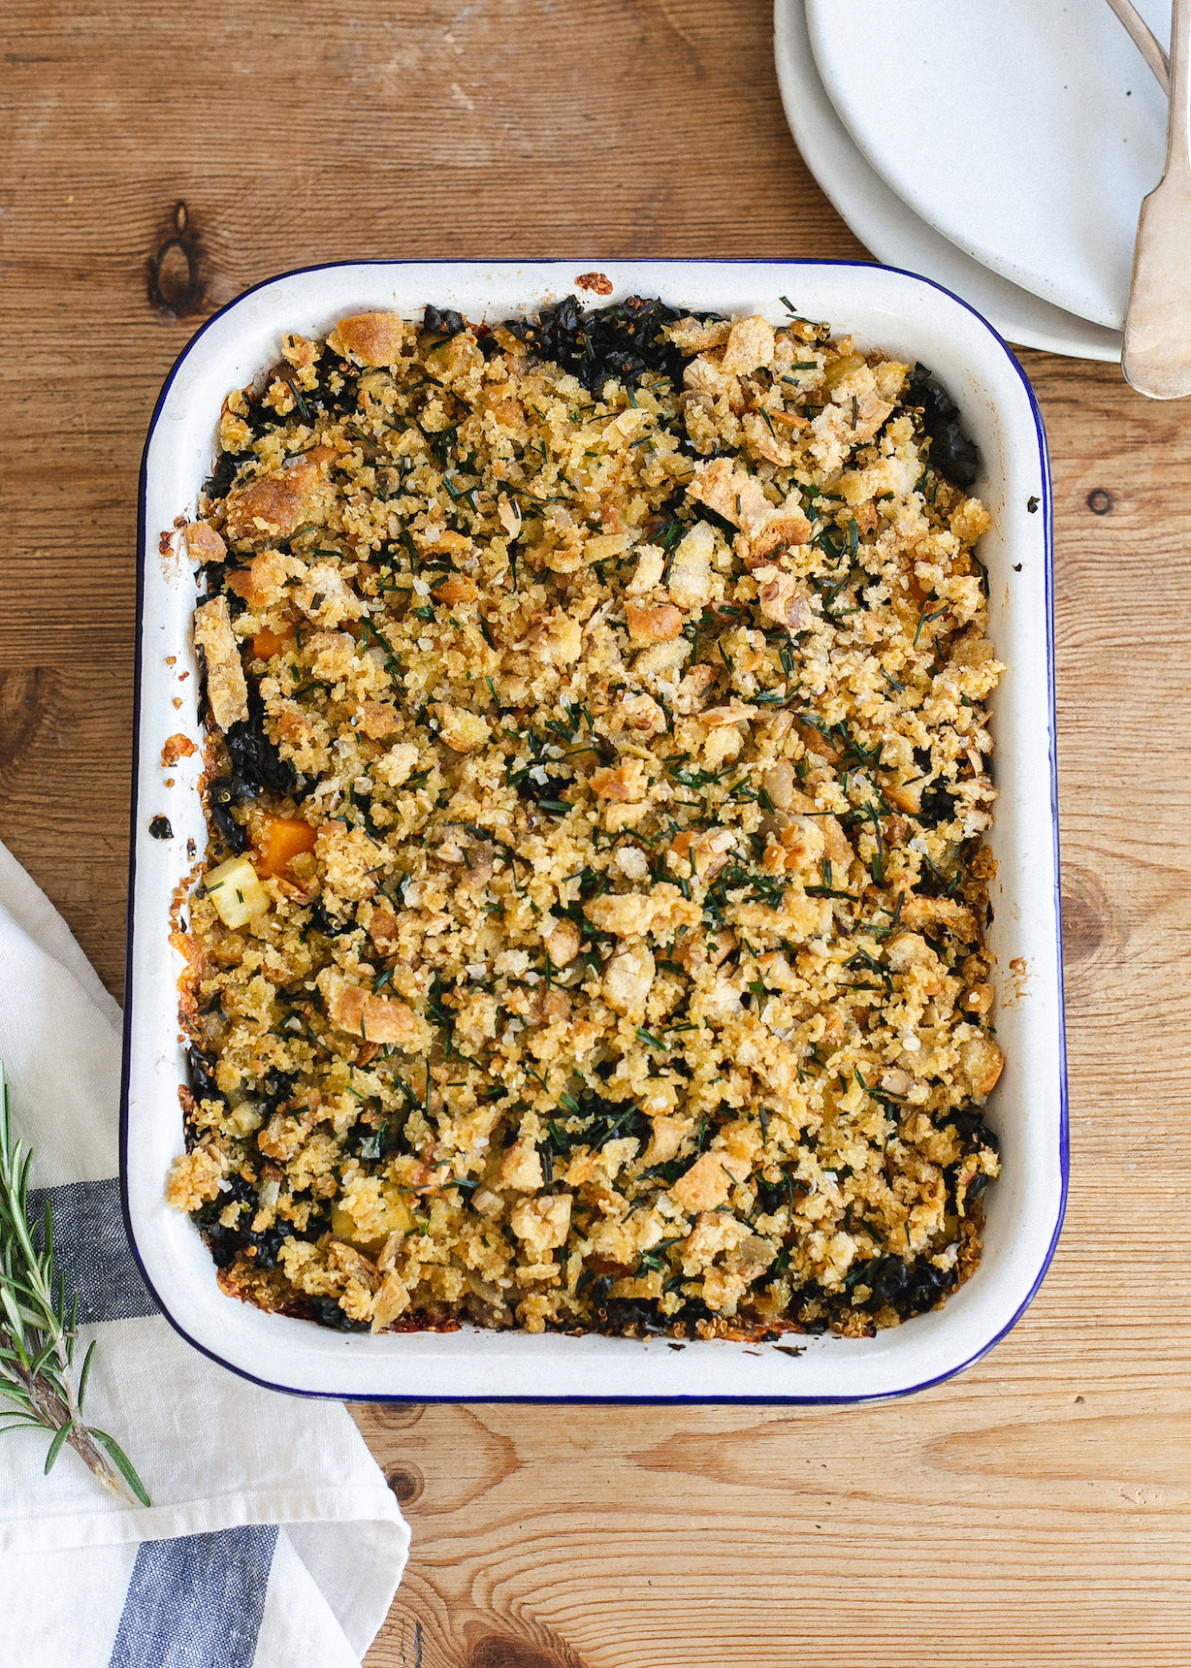 Winter quinoa low FODMAP vegetable bake - low fodmap recipes vegetarian